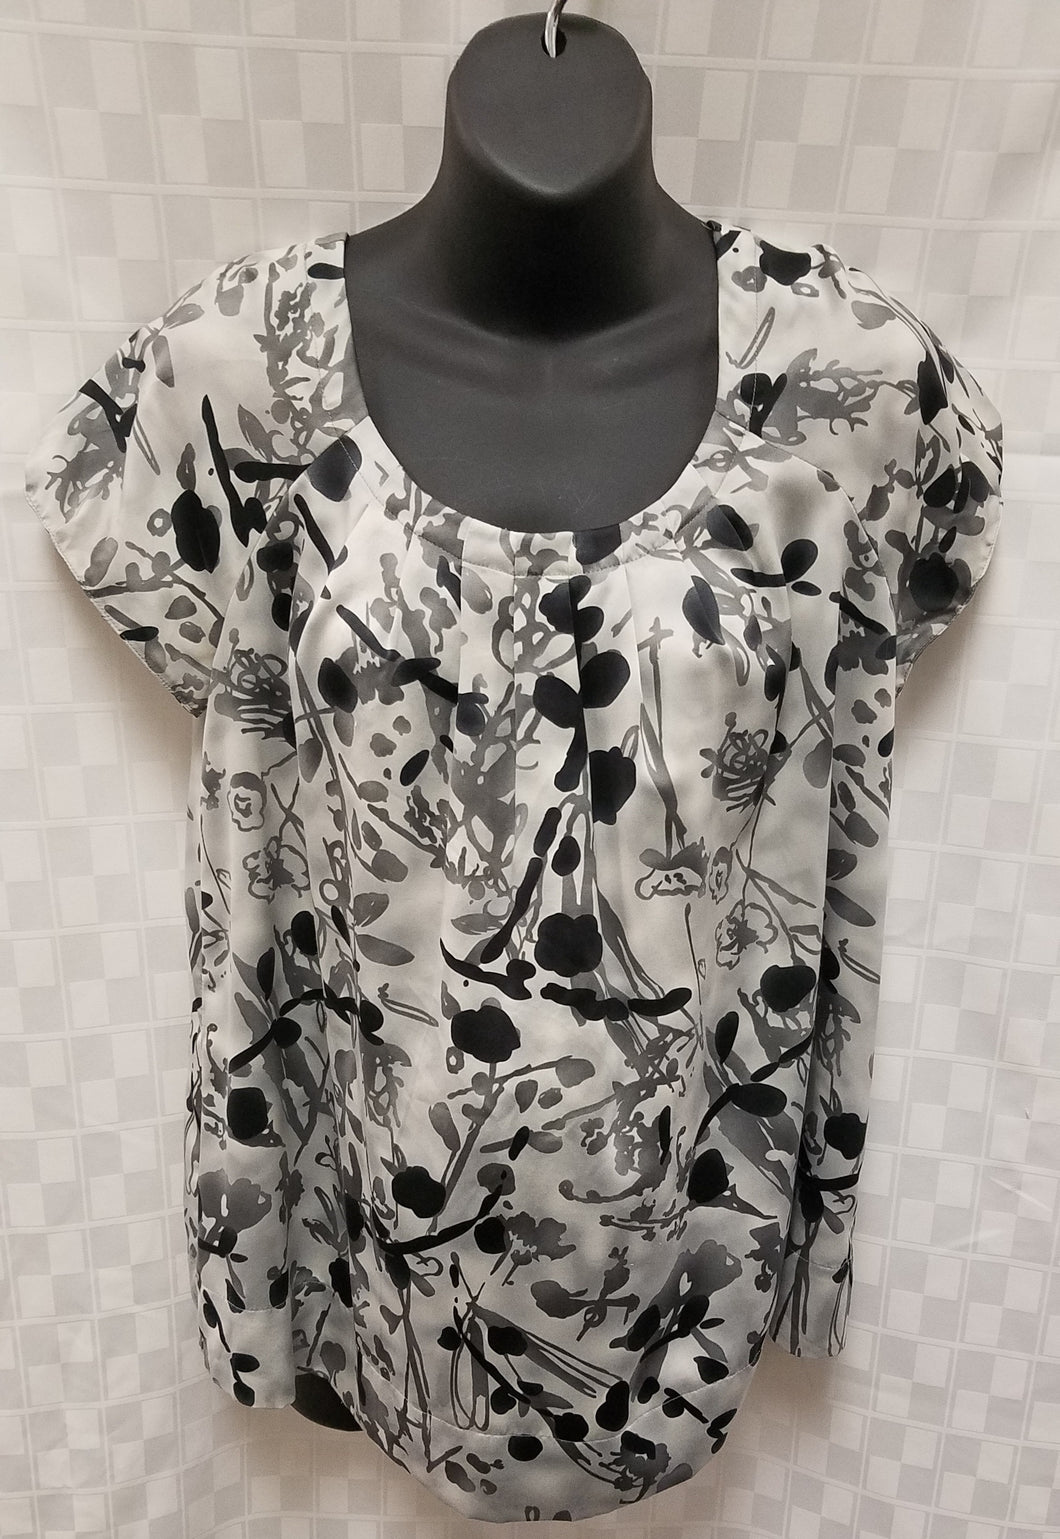 Medium Black & Gray Cap Sleeve Maternity Blouse